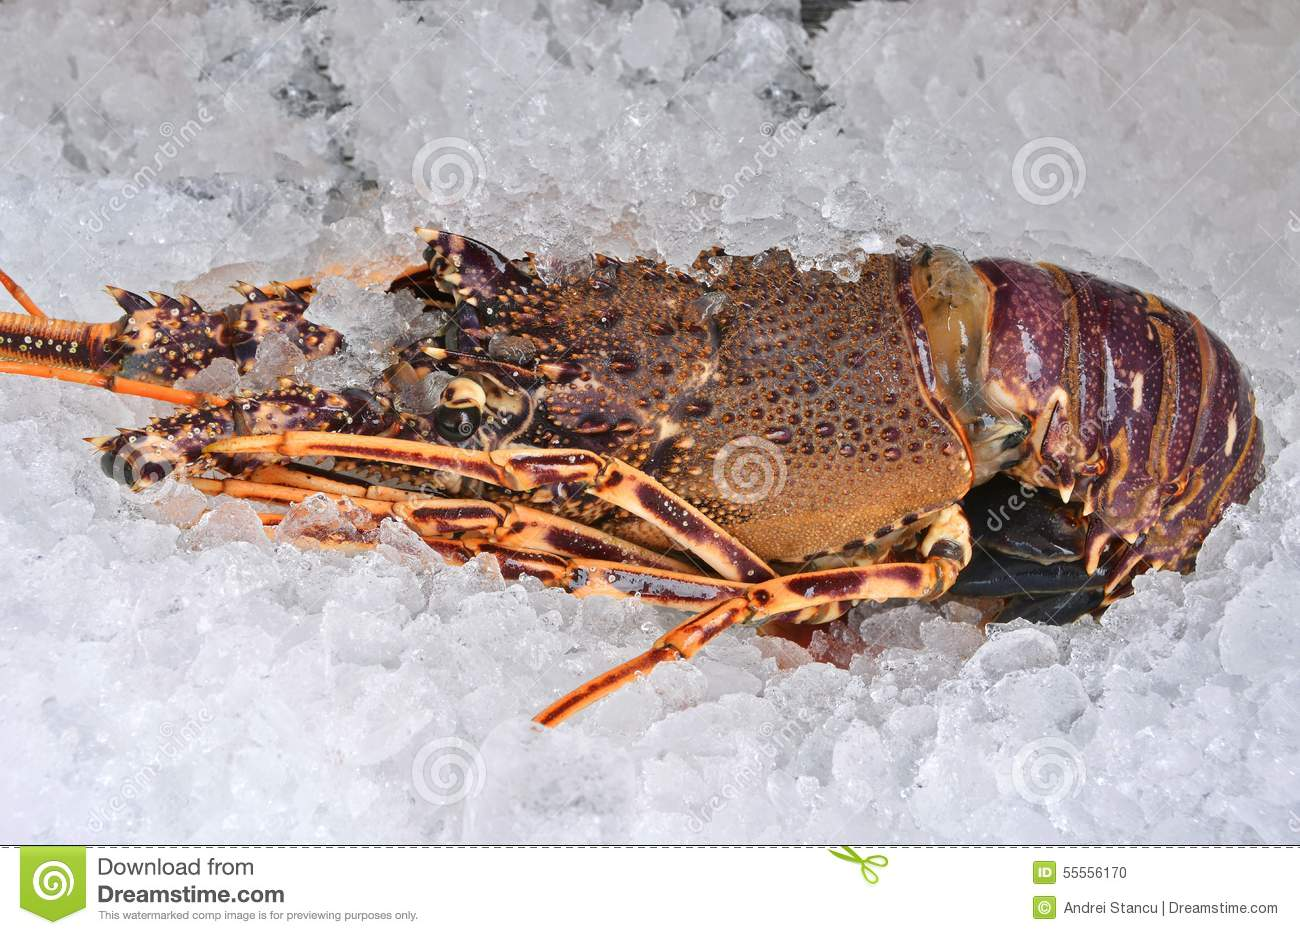 Australian Lobster Stock Photo - Image: 55556170